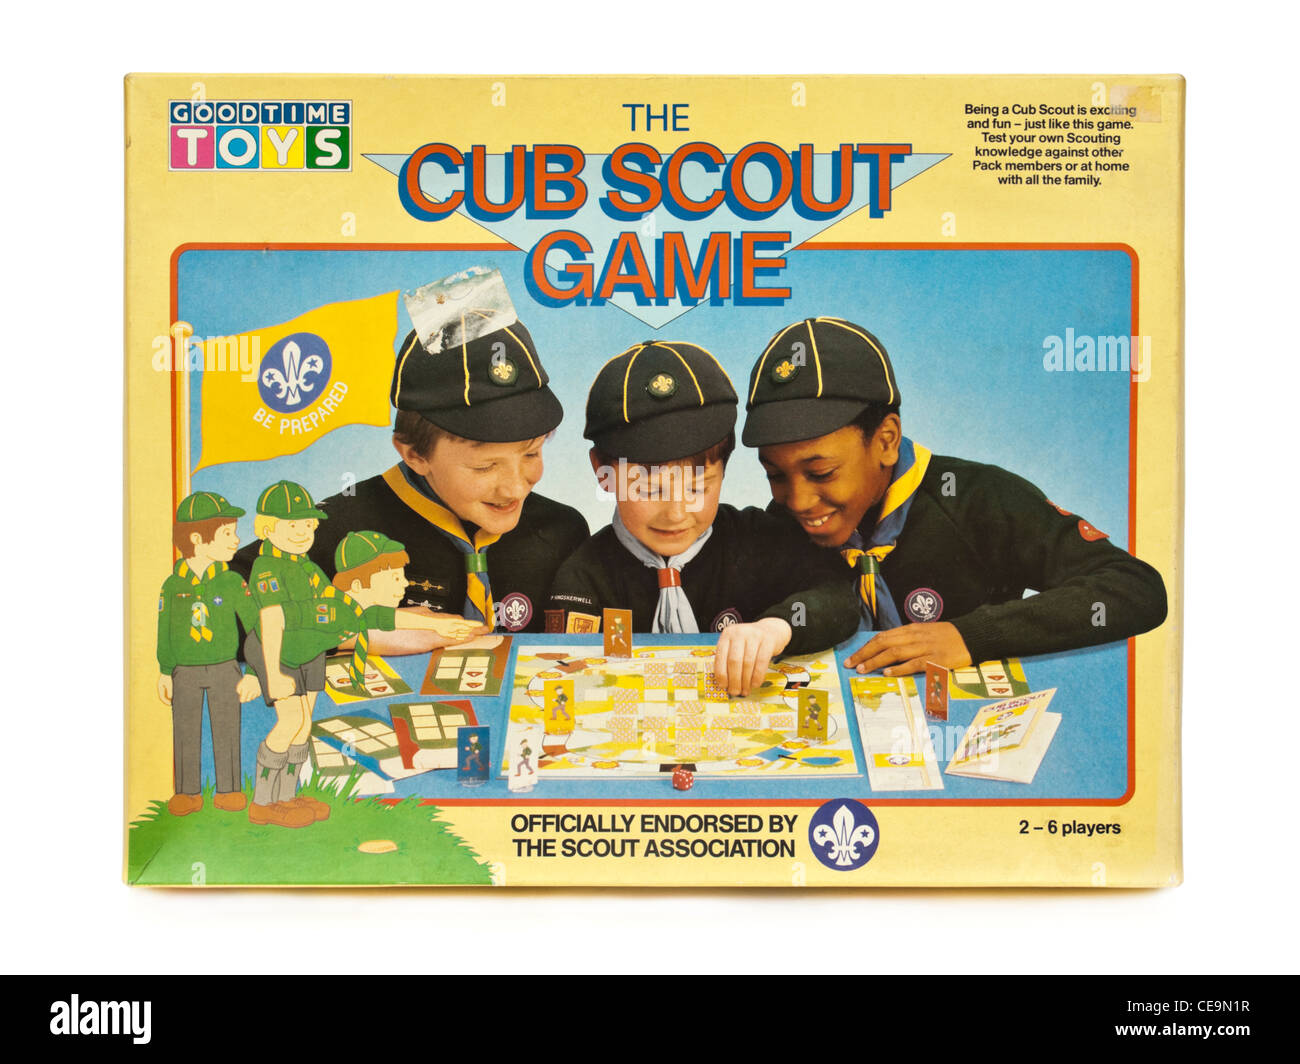 Vintage 'The Cub Scout Game' board game by Goodtime Toys (1986), officially endorsed by the Scout Association. - Stock Image